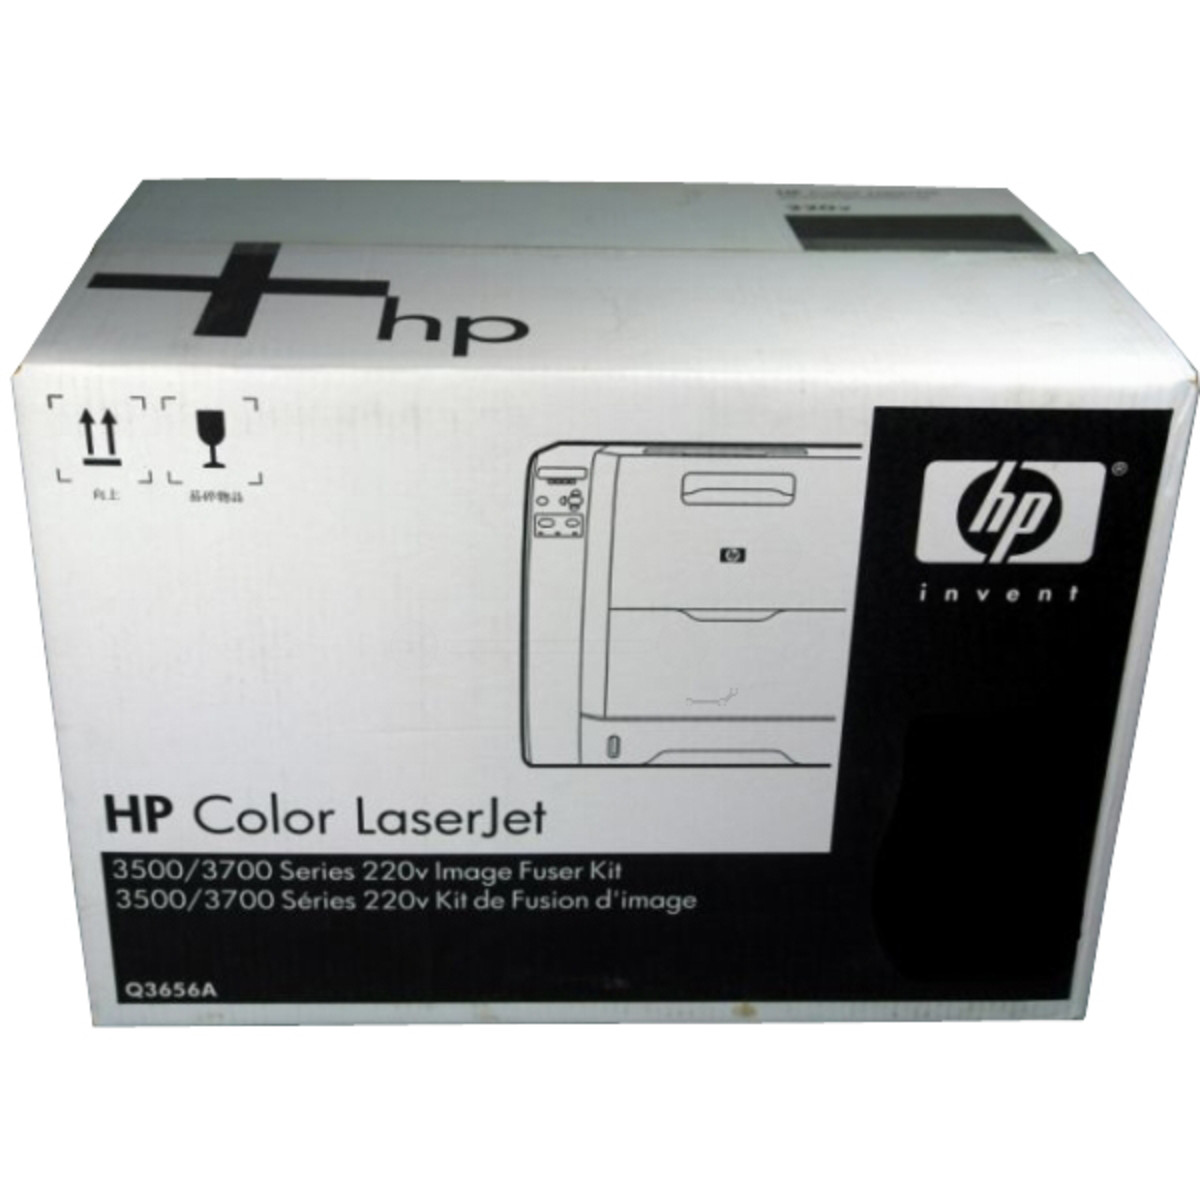 HP Colour Laserjet 3500/3700 220V Fuser Assembly